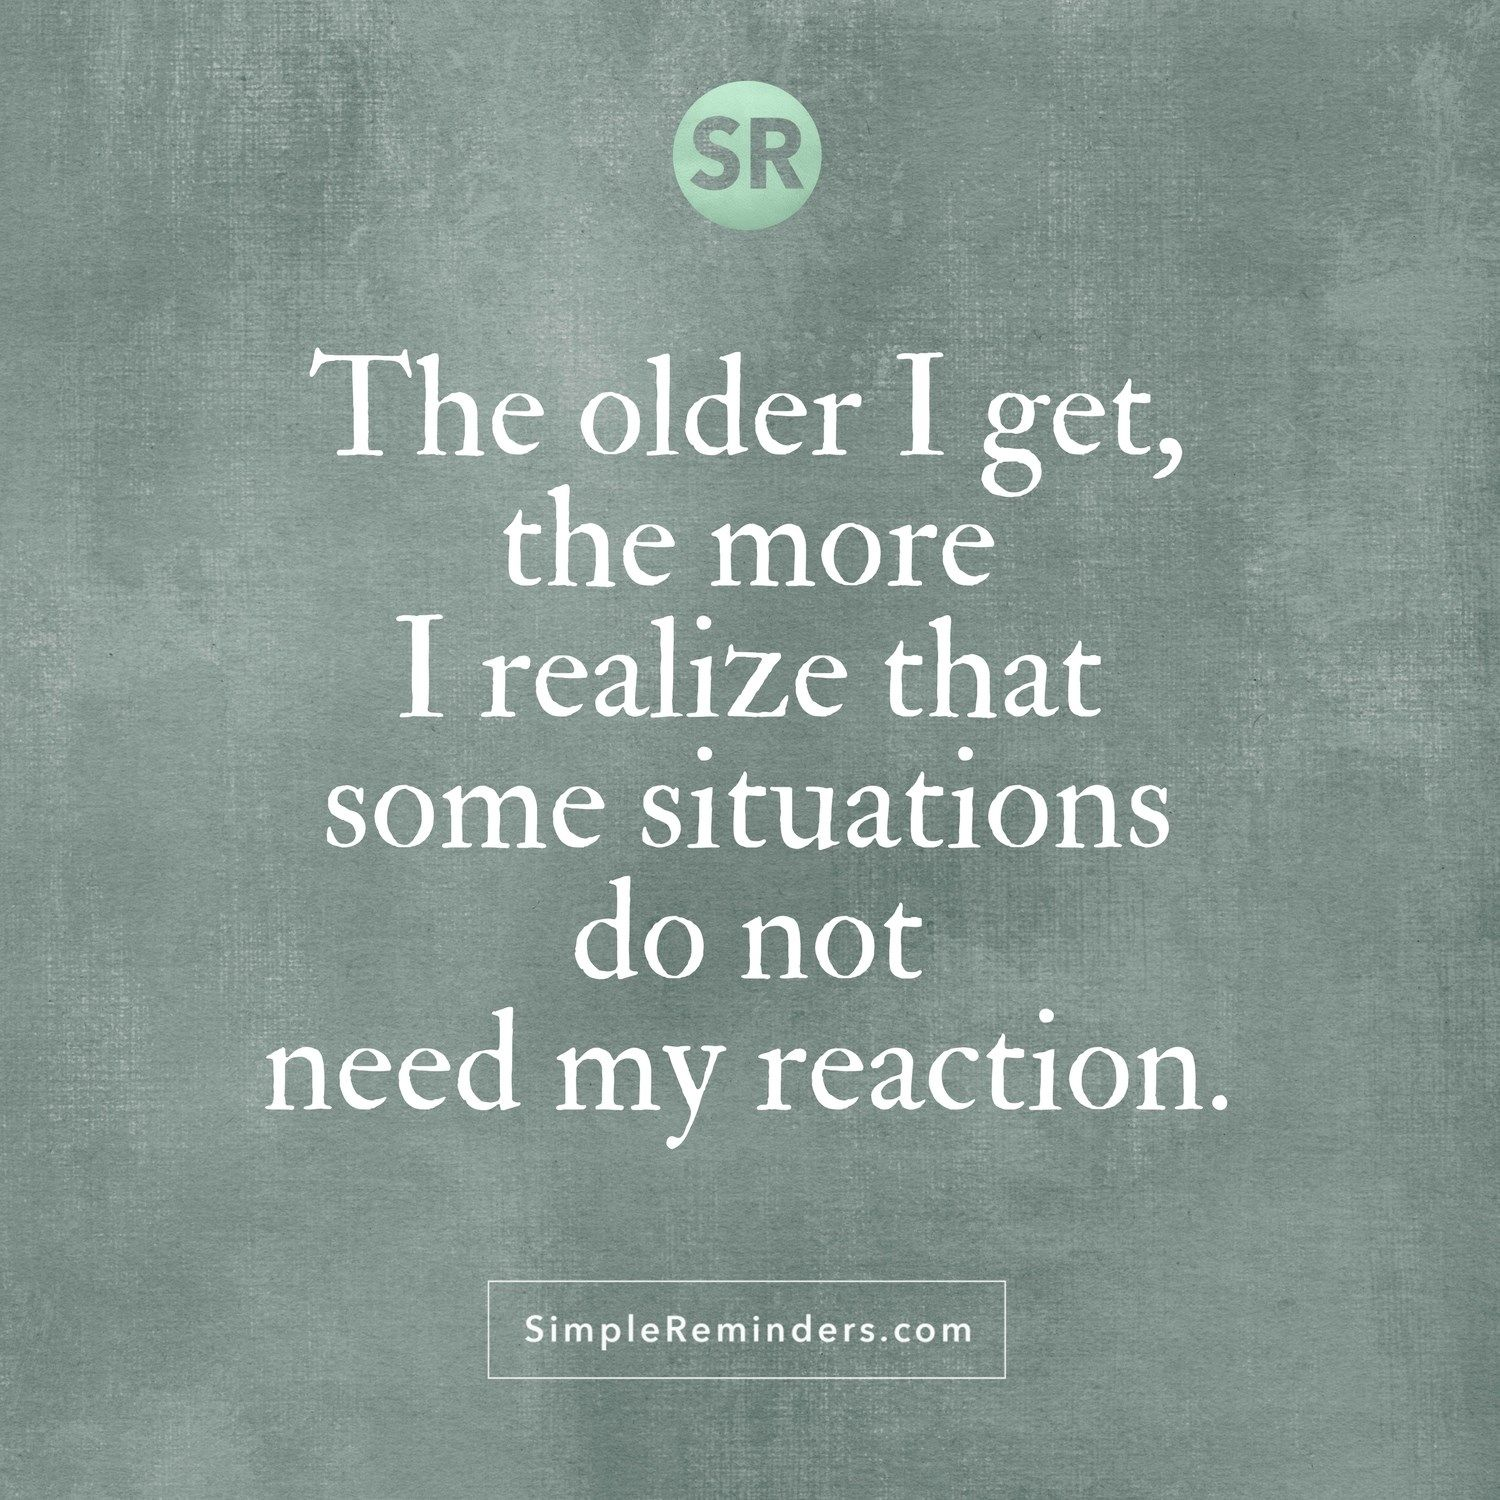 The Older I Get, The More I Realize That Some Situations